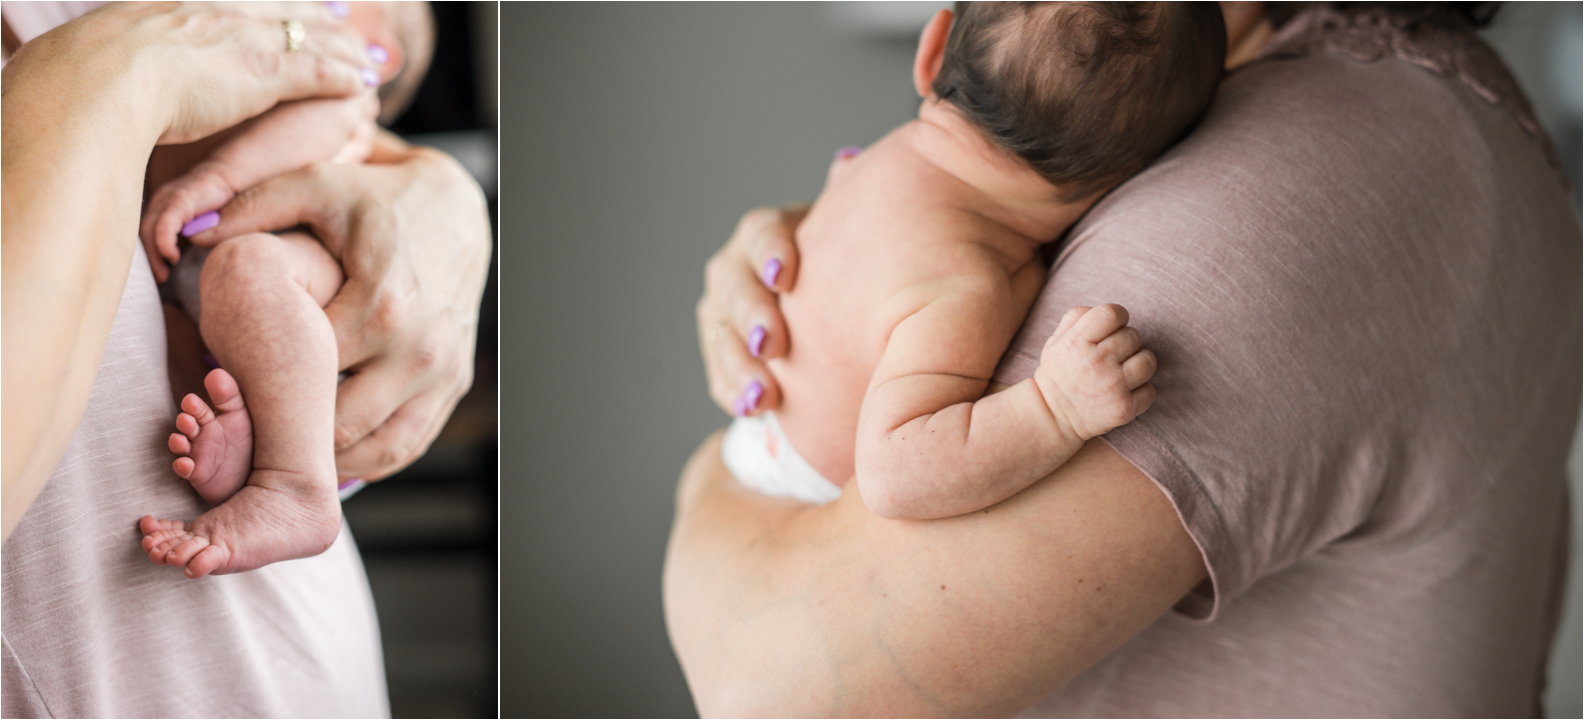 Those feet and hands… a necessary shot when photographing a newborn. They grow so quickly, it can be tough to remember what they looked like without photos!